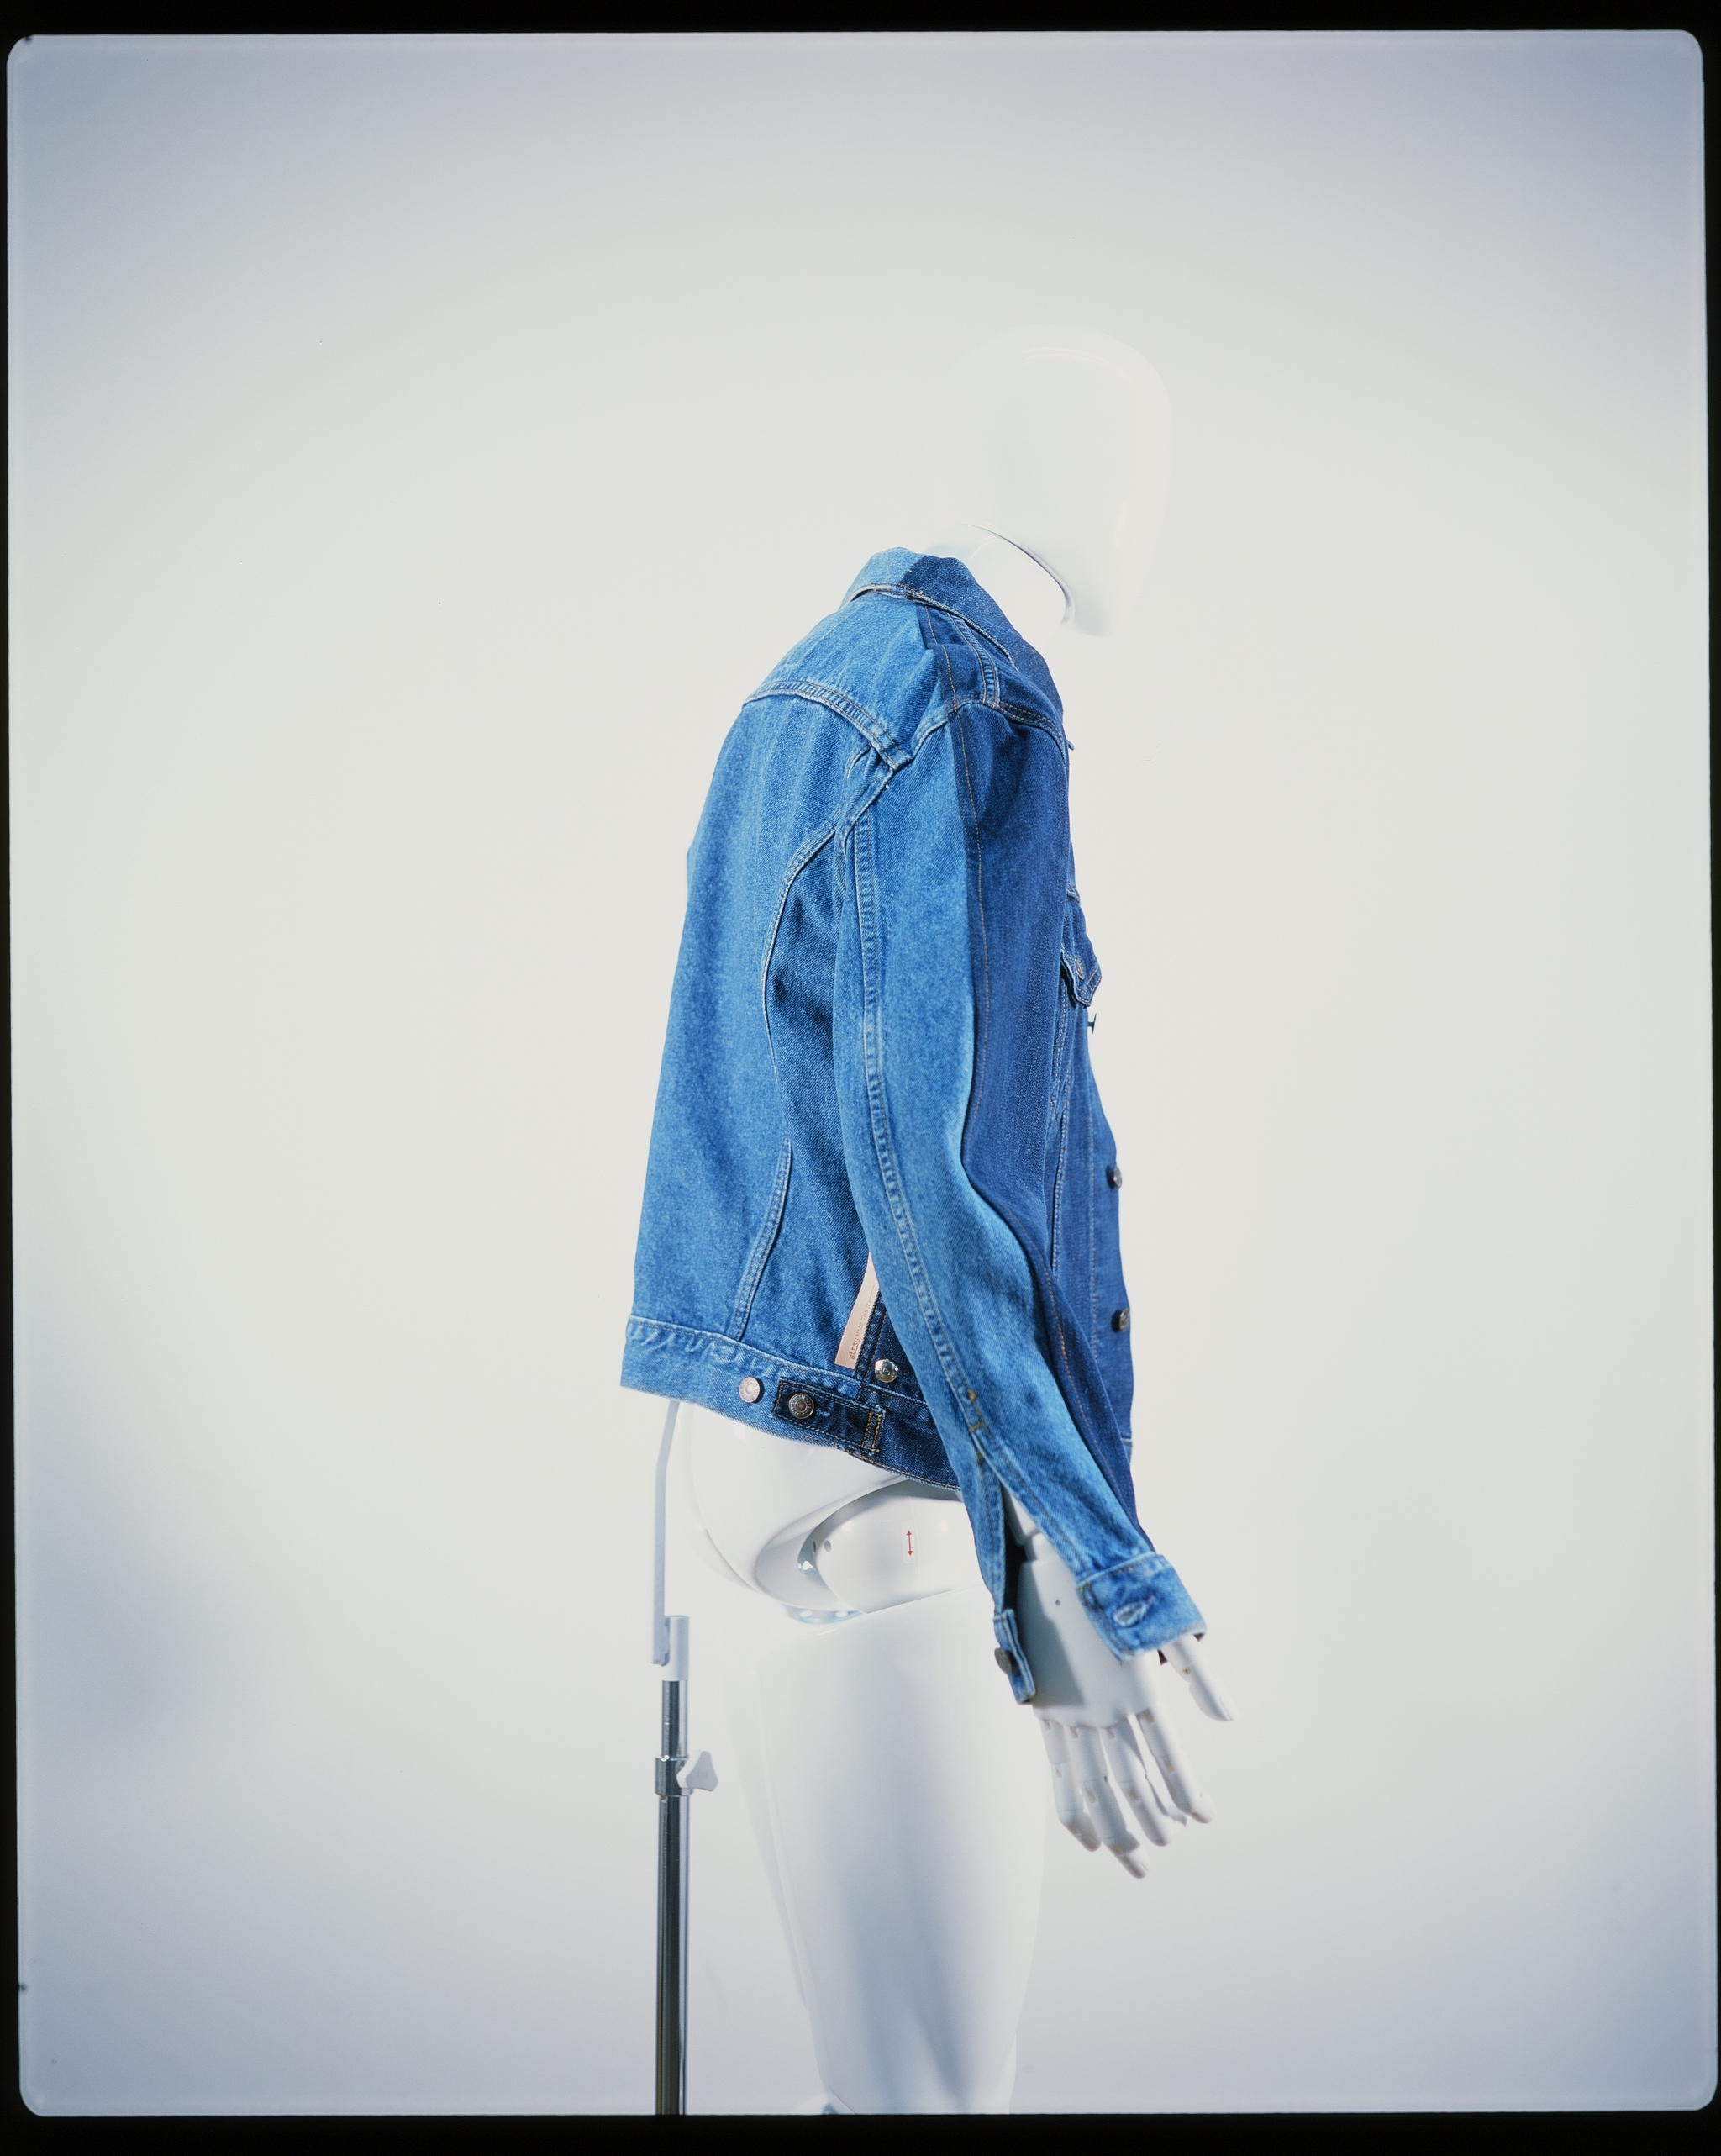 BLESS THE MARYAM NASSIR ZADEH JEAN JACKET LIGHTBLUE & BLUE